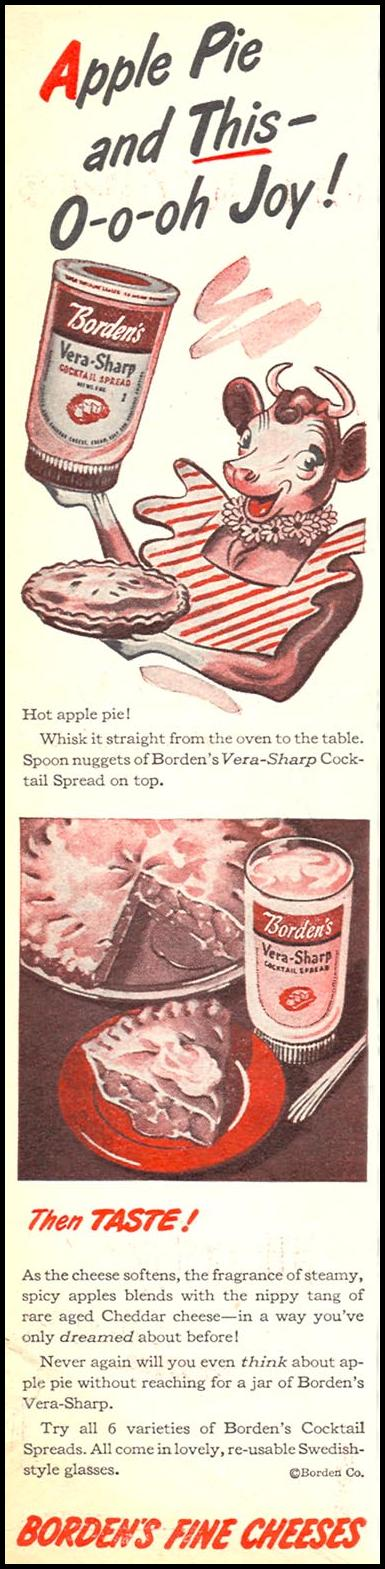 BORDEN'S VERA-SHARP CHESSE SPREAD WOMAN'S DAY 11/01/1945 p. 8